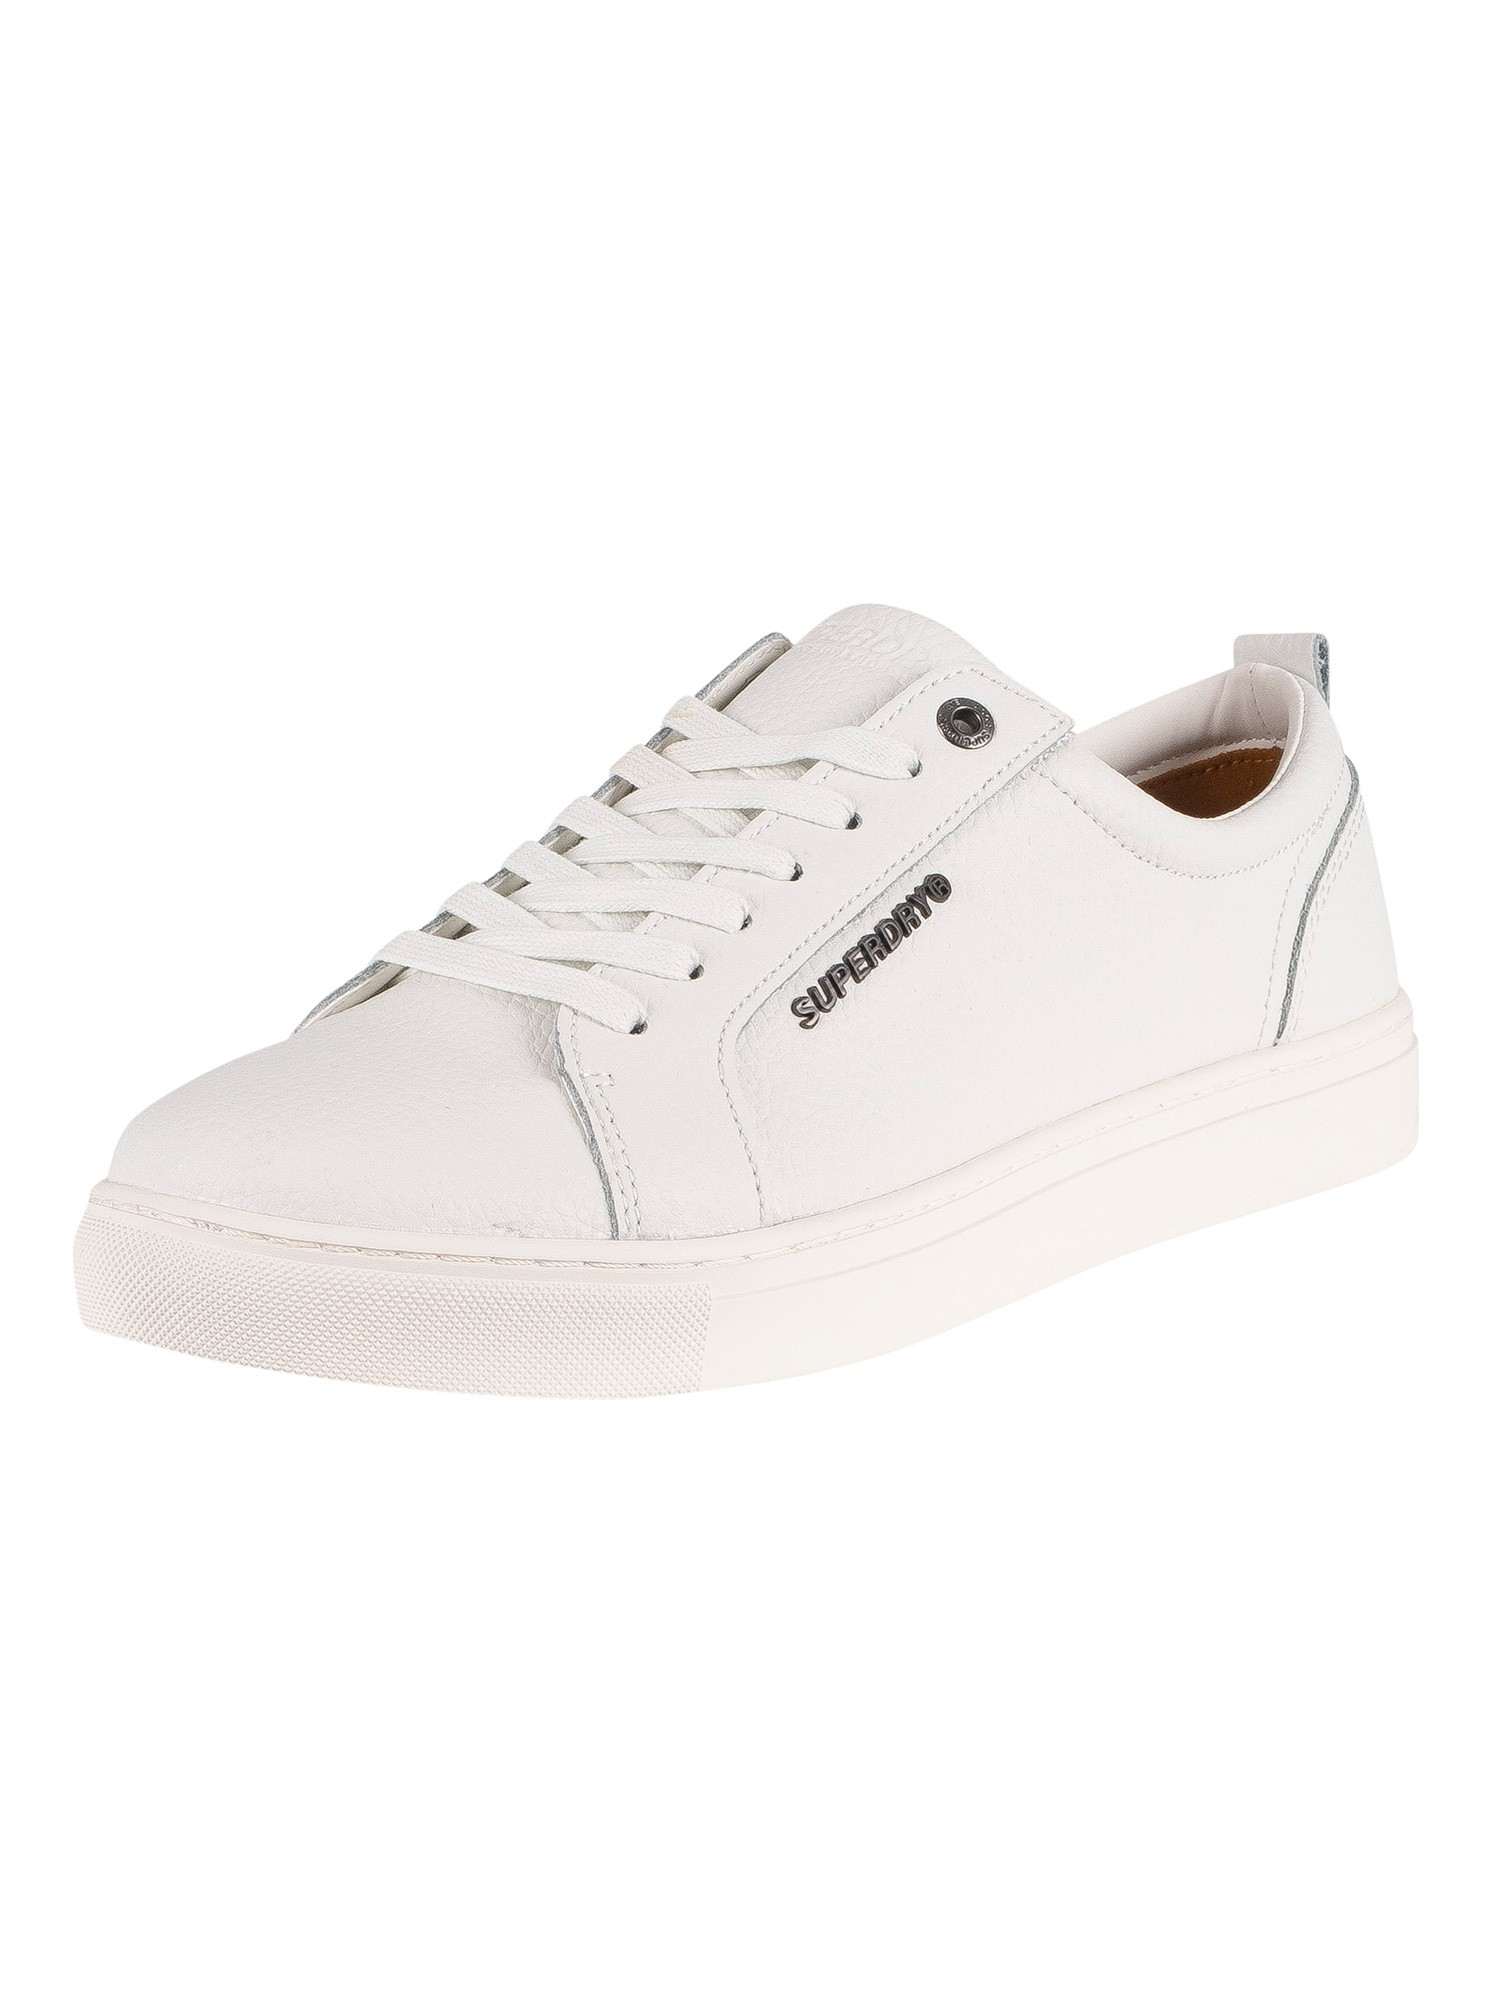 Superdry Truman Leather Trainers - White